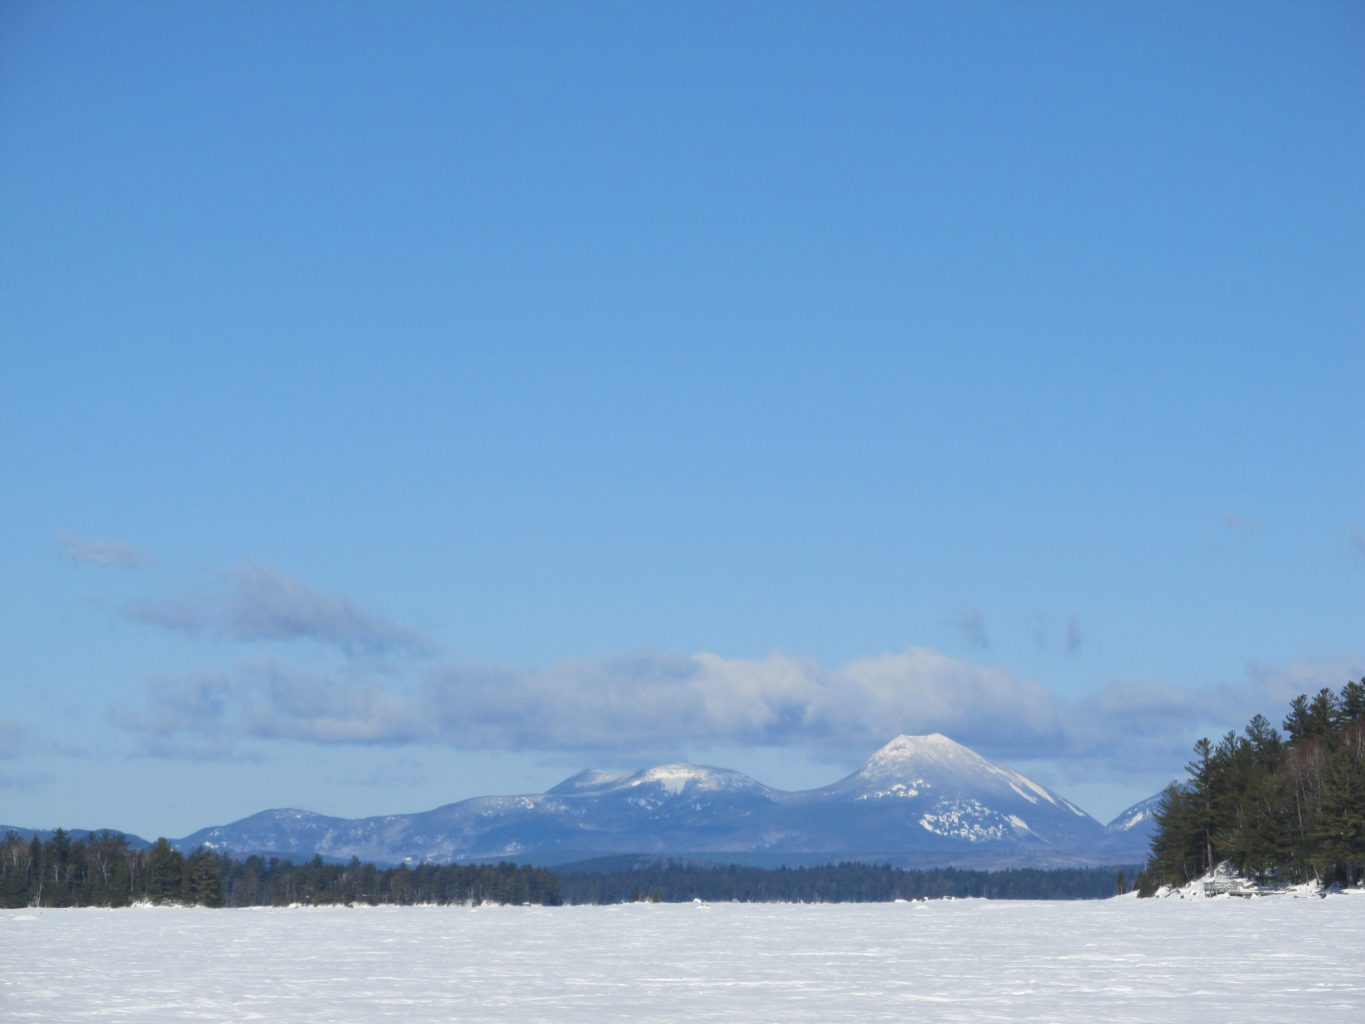 Doubletop Mountain in Baxter State Park, February 2017